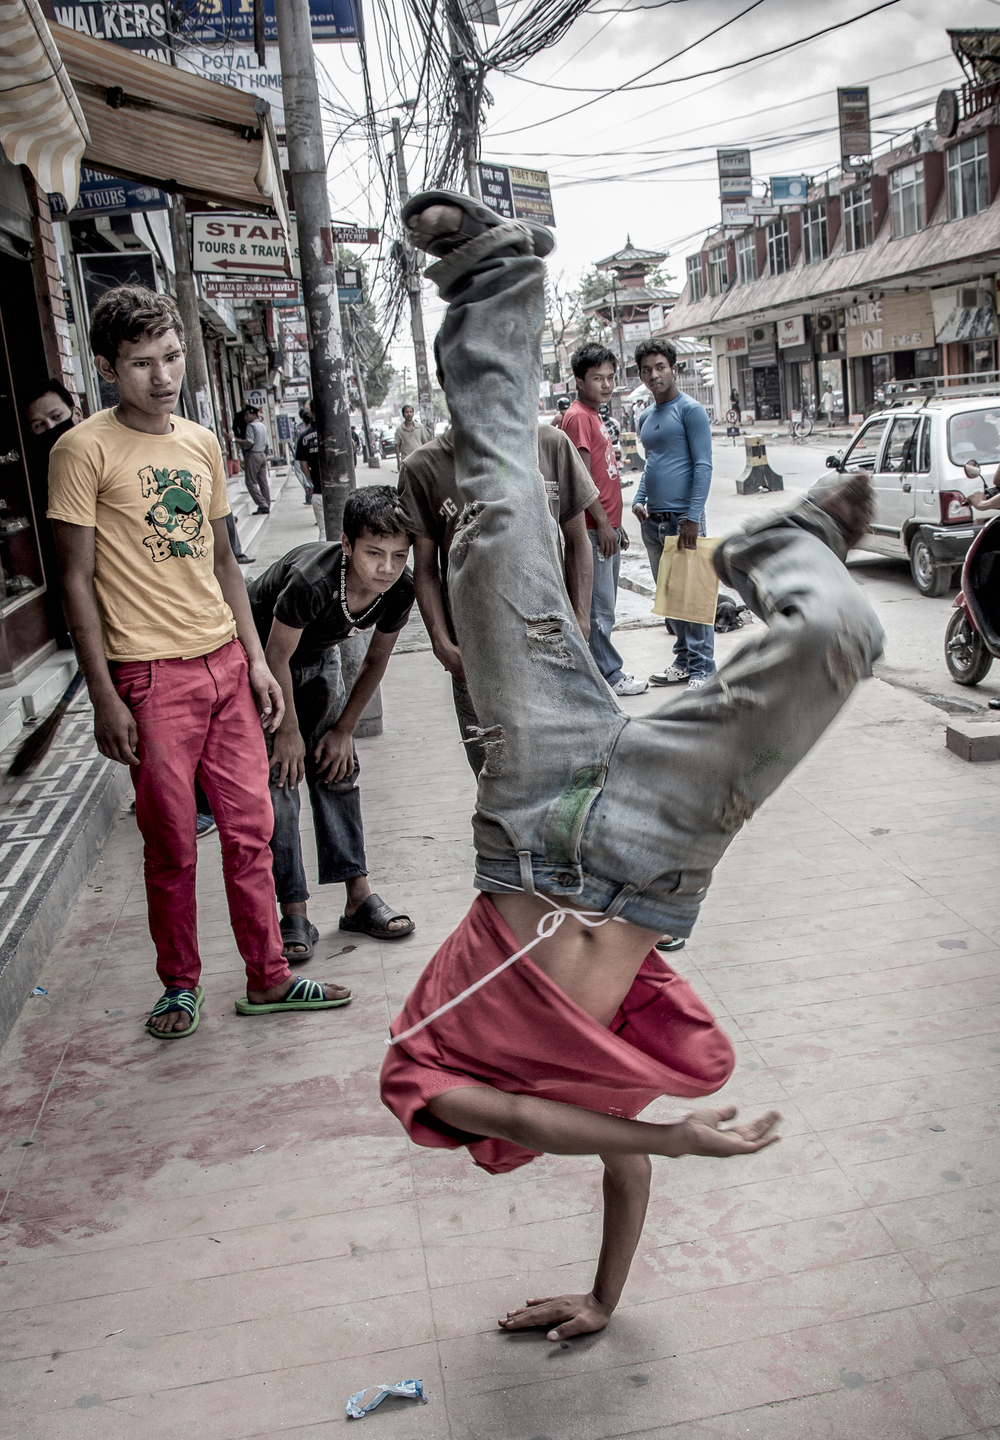 One of the boys' pleasures, practicing breakdancing.